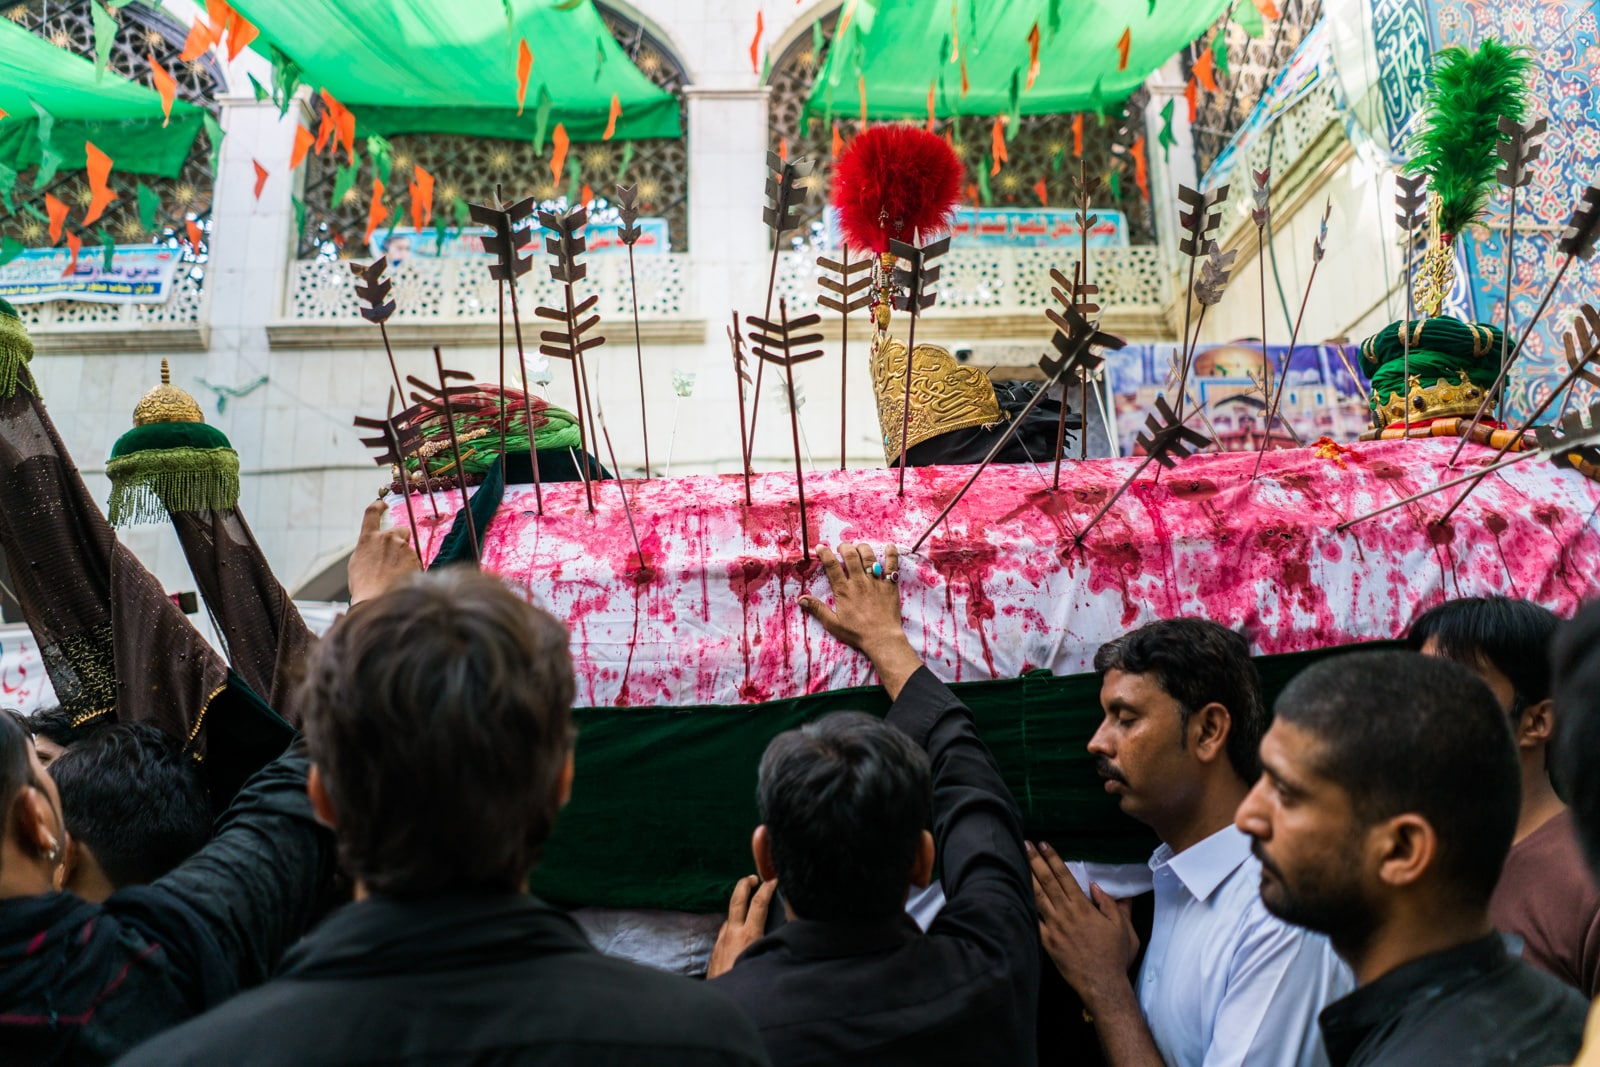 The Urs of Lal Shahbaz Qalandar in Sehwan, Pakistan - Man touching Shia coffin with blood and arrows outside the shrine - Lost With Purpose travel blog